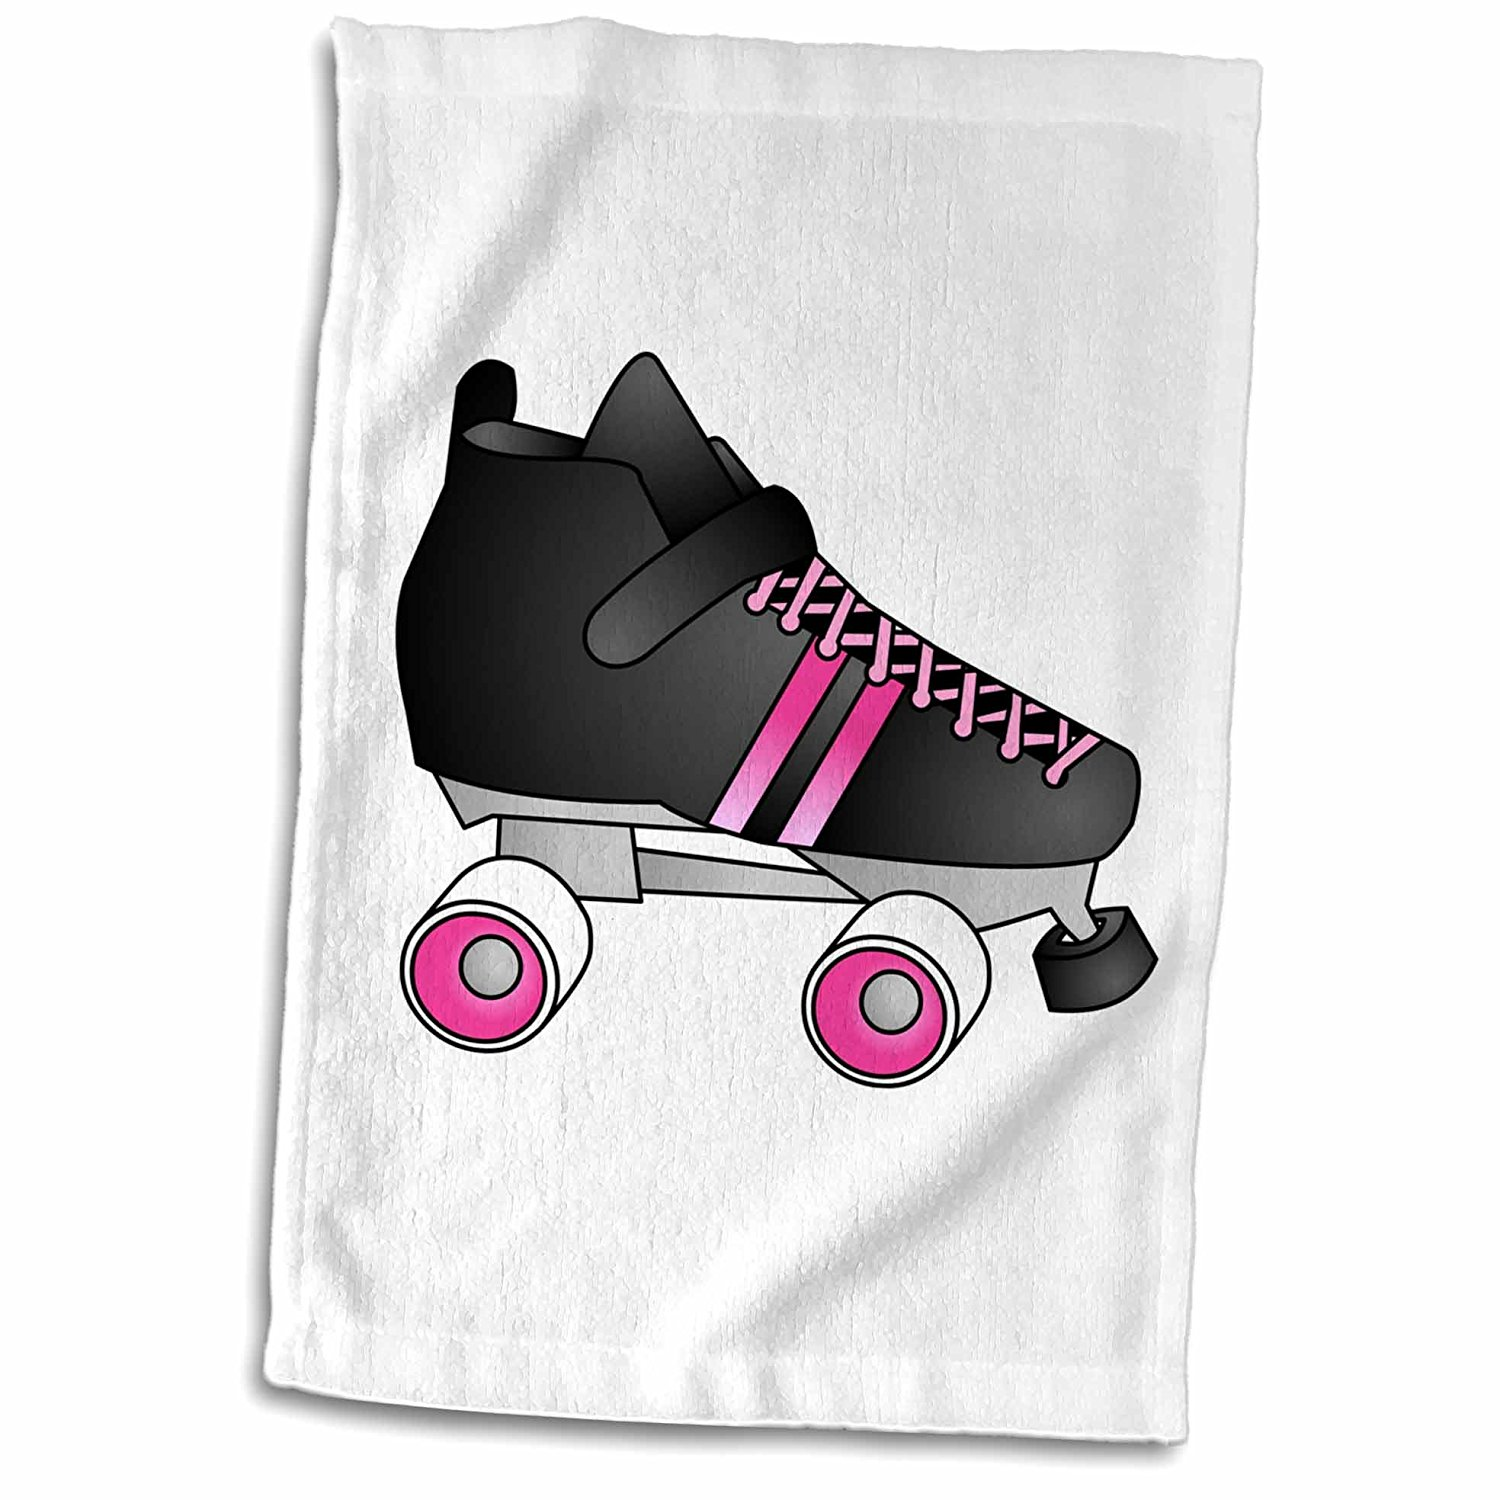 3dRose Janna Salak Designs Roller Derby - Skating Gifts - Black and Pink Roller Skate - 12x18 Towel (twl_35463_1)